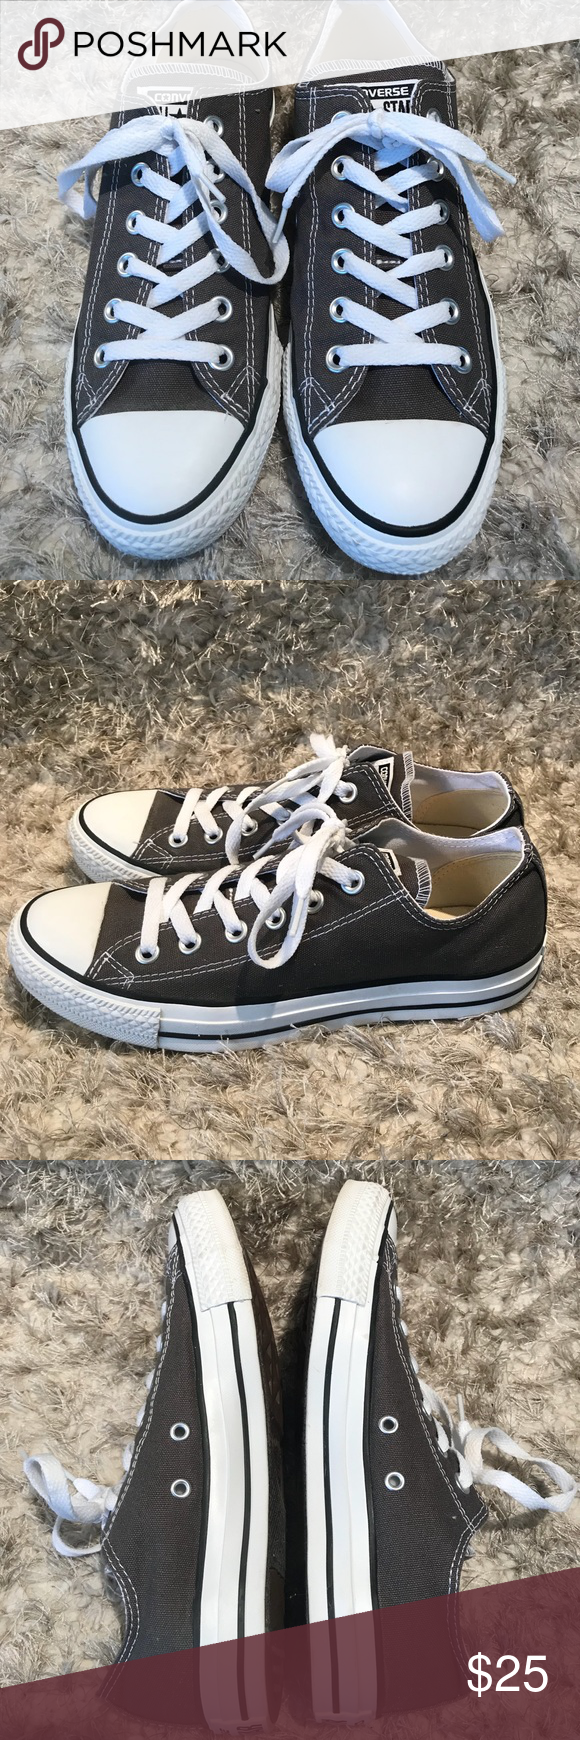 acaacb2ace6 Converse chuck taylor all star low top converse chuck taylor harlequin chuck  taylors png 580x1740 Harlequin